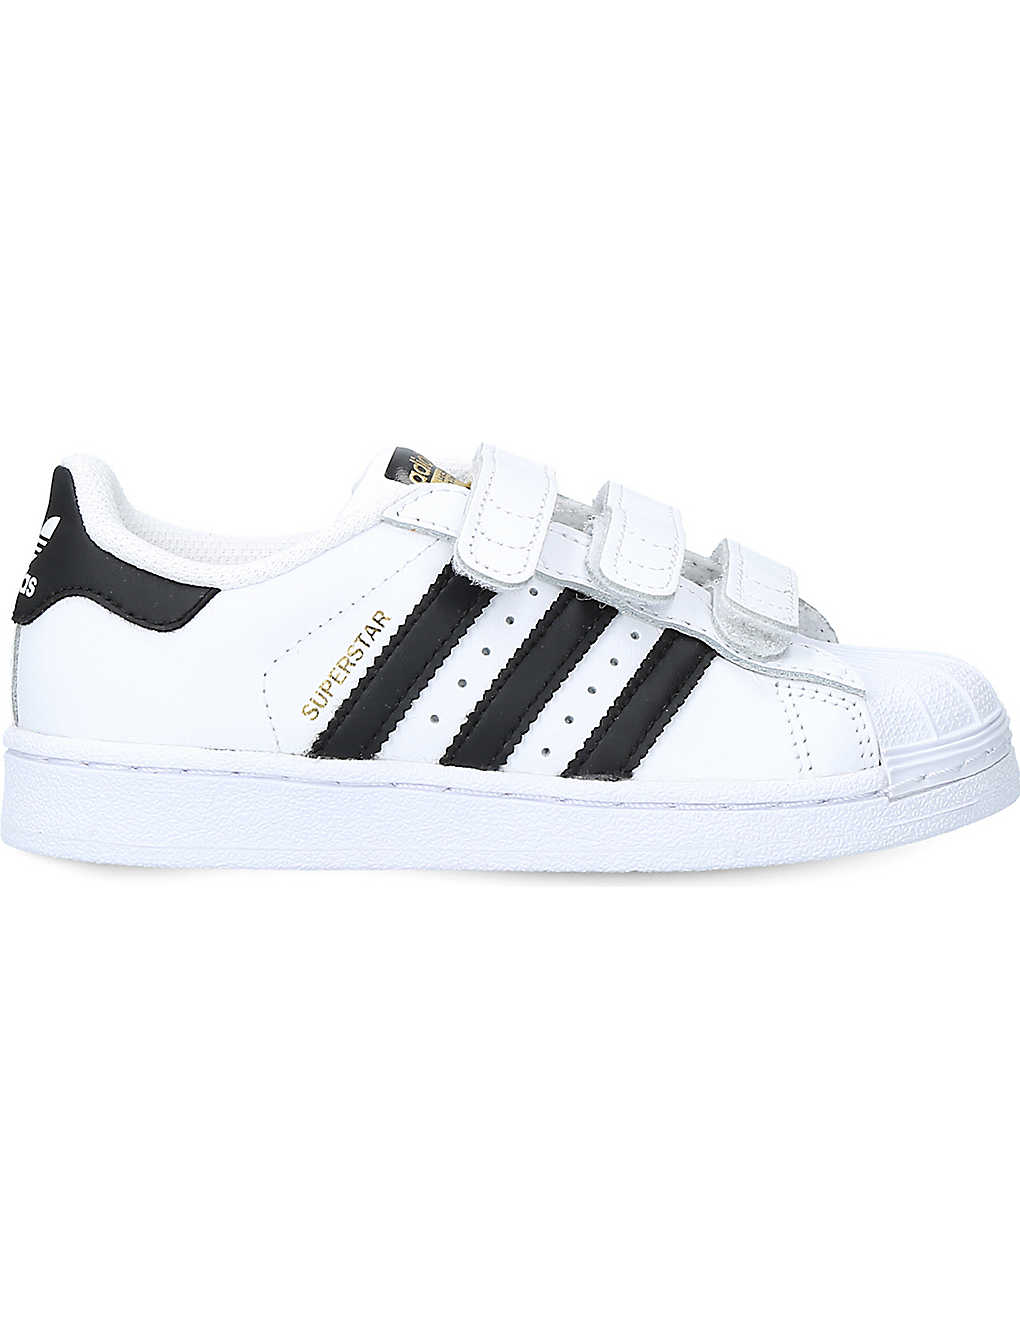 ADIDAS: Superstar leather trainers 5-9 years